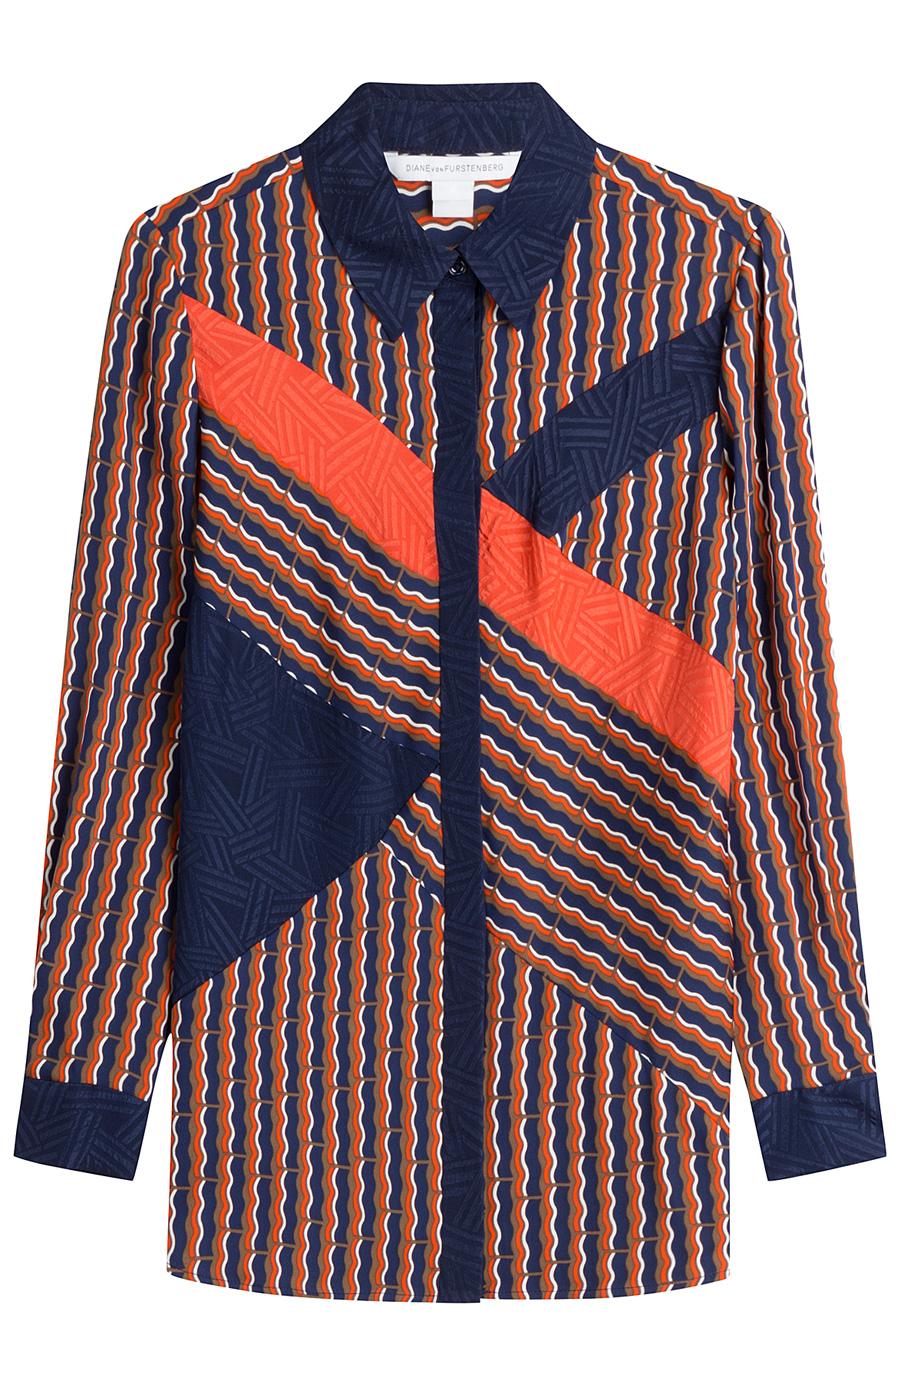 DVF NAVY & ORANGE SILK PAJAMA BLOUSE